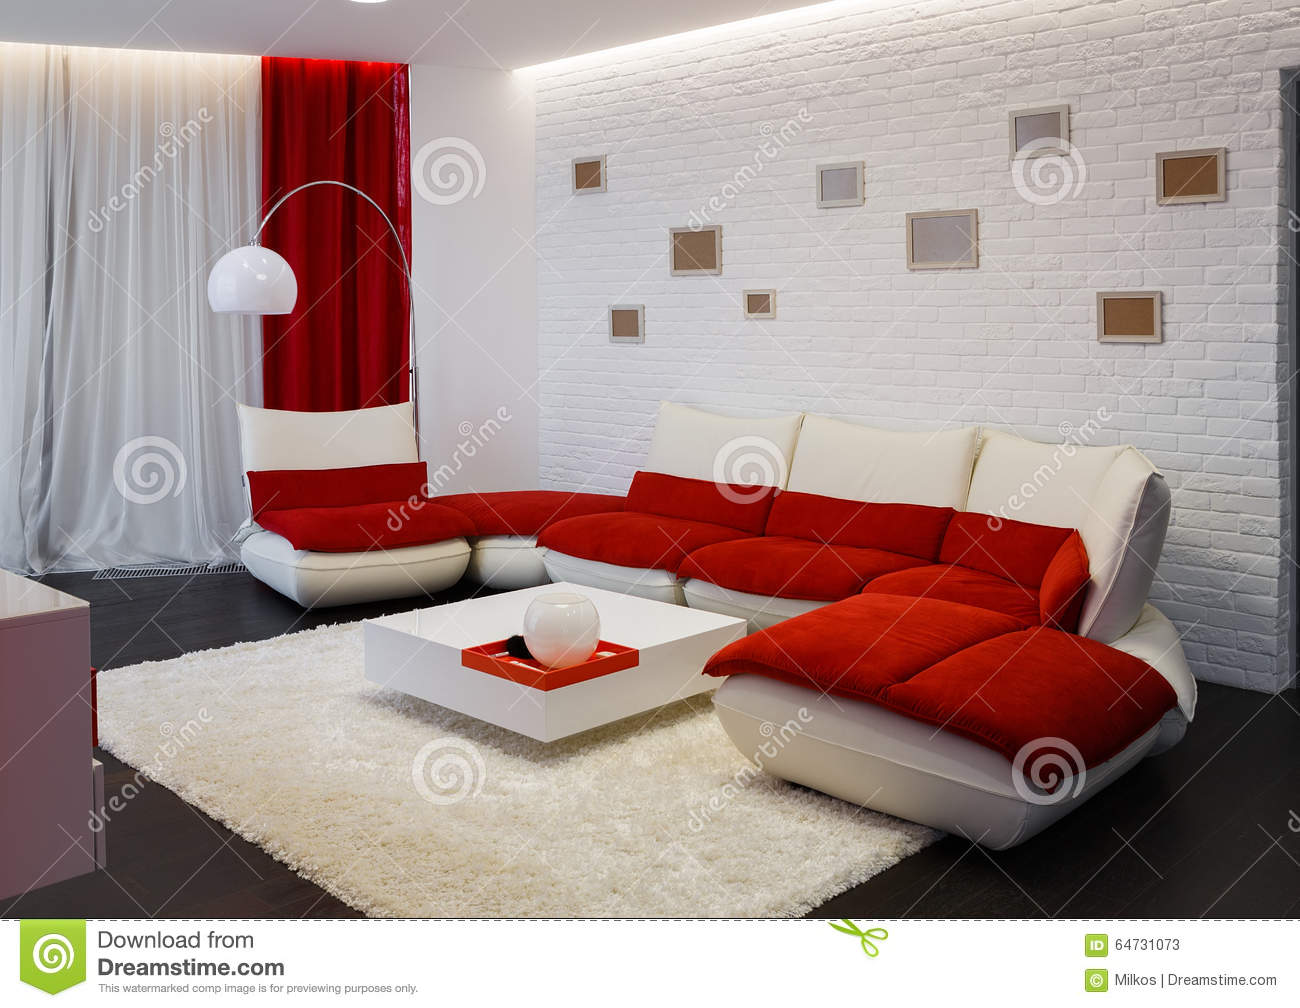 Modern Living Room Red modern living room interior with red sofa stock photo - image